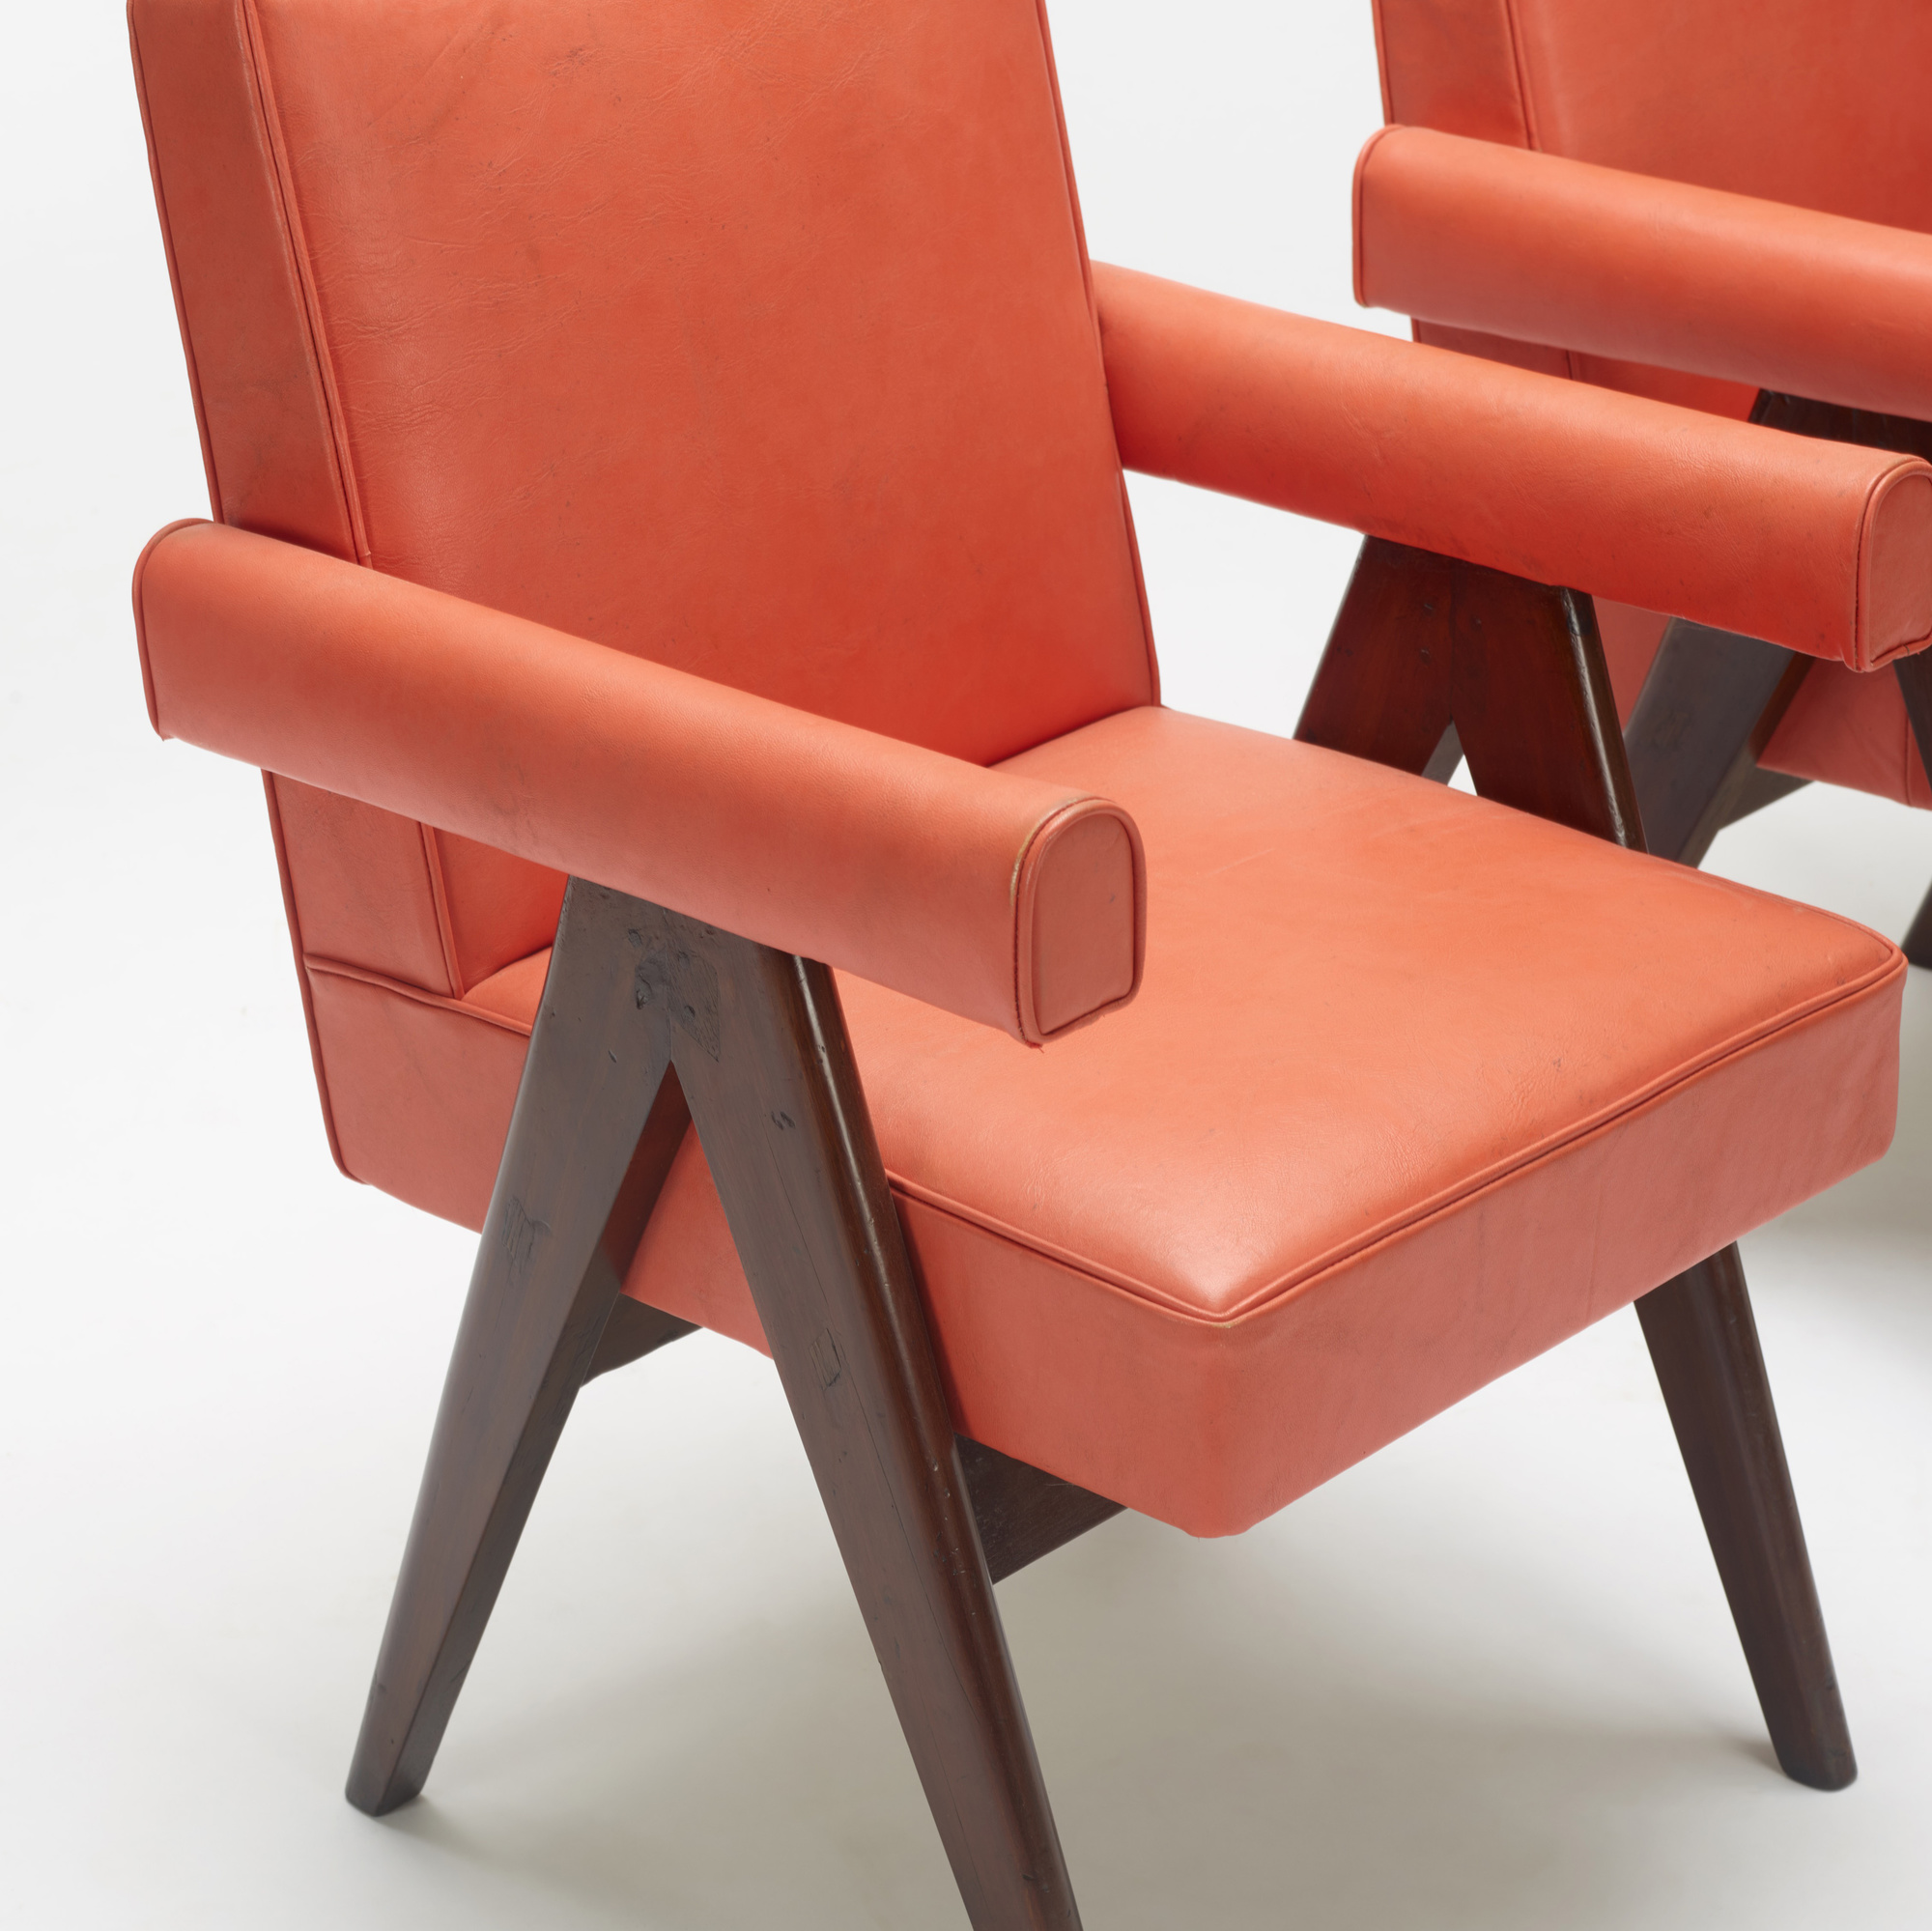 117: Pierre Jeanneret / pair of Committee armchairs from the High Court, Chandigarh (3 of 3)